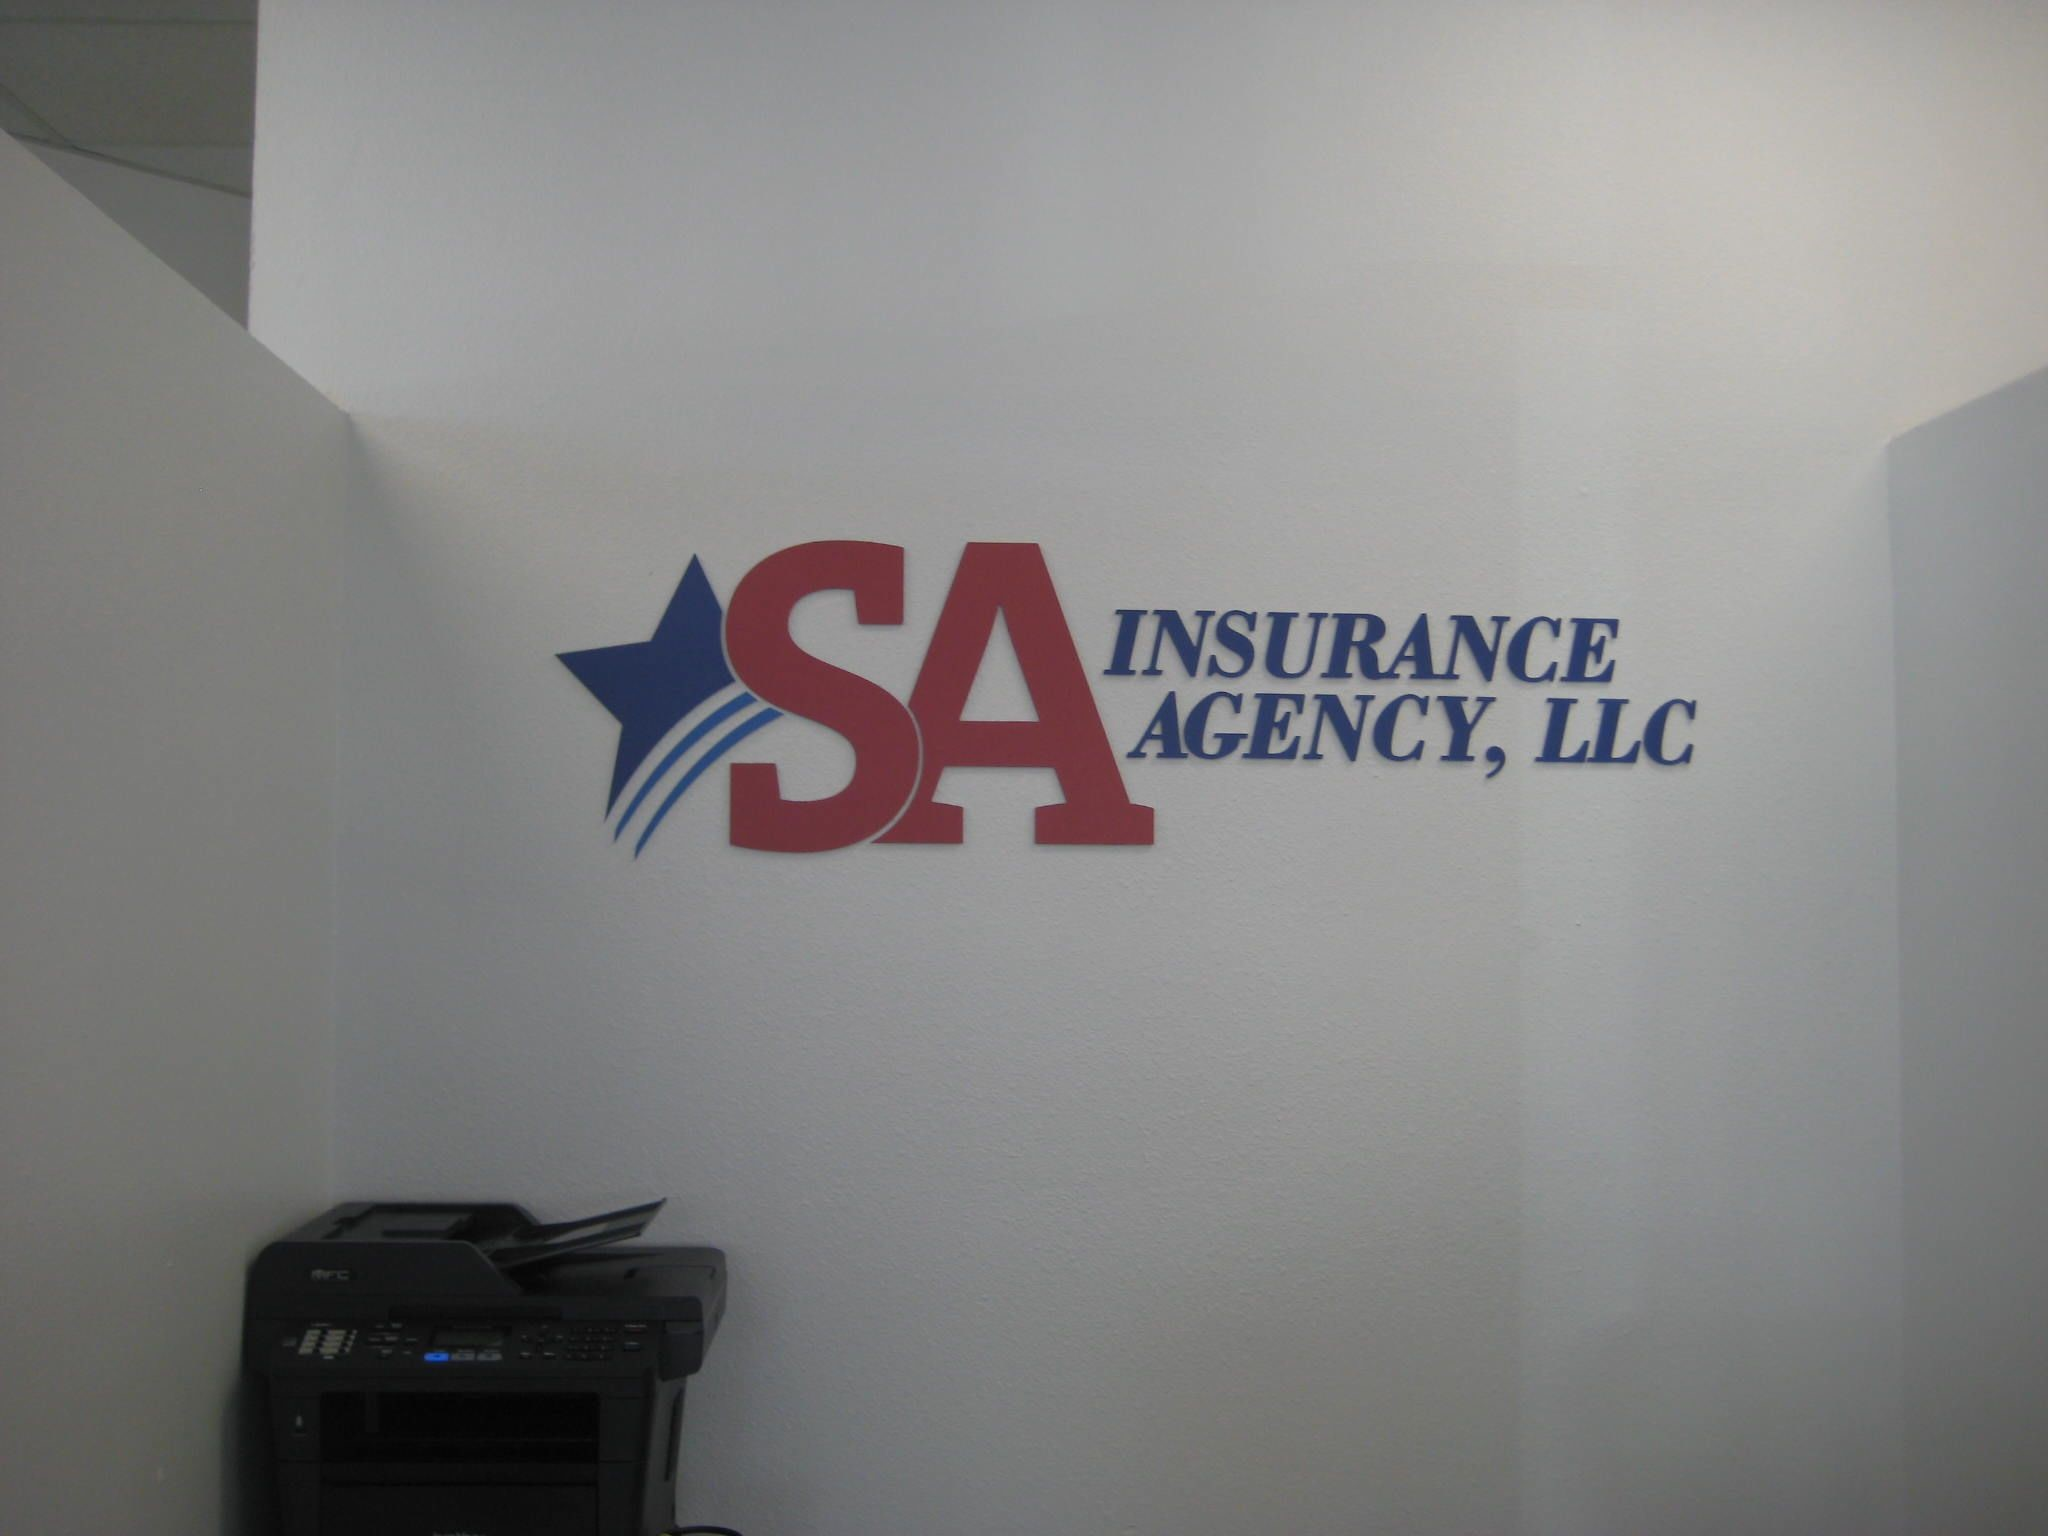 Interior Sign for SA Insurance Agency in San Antonio, TX